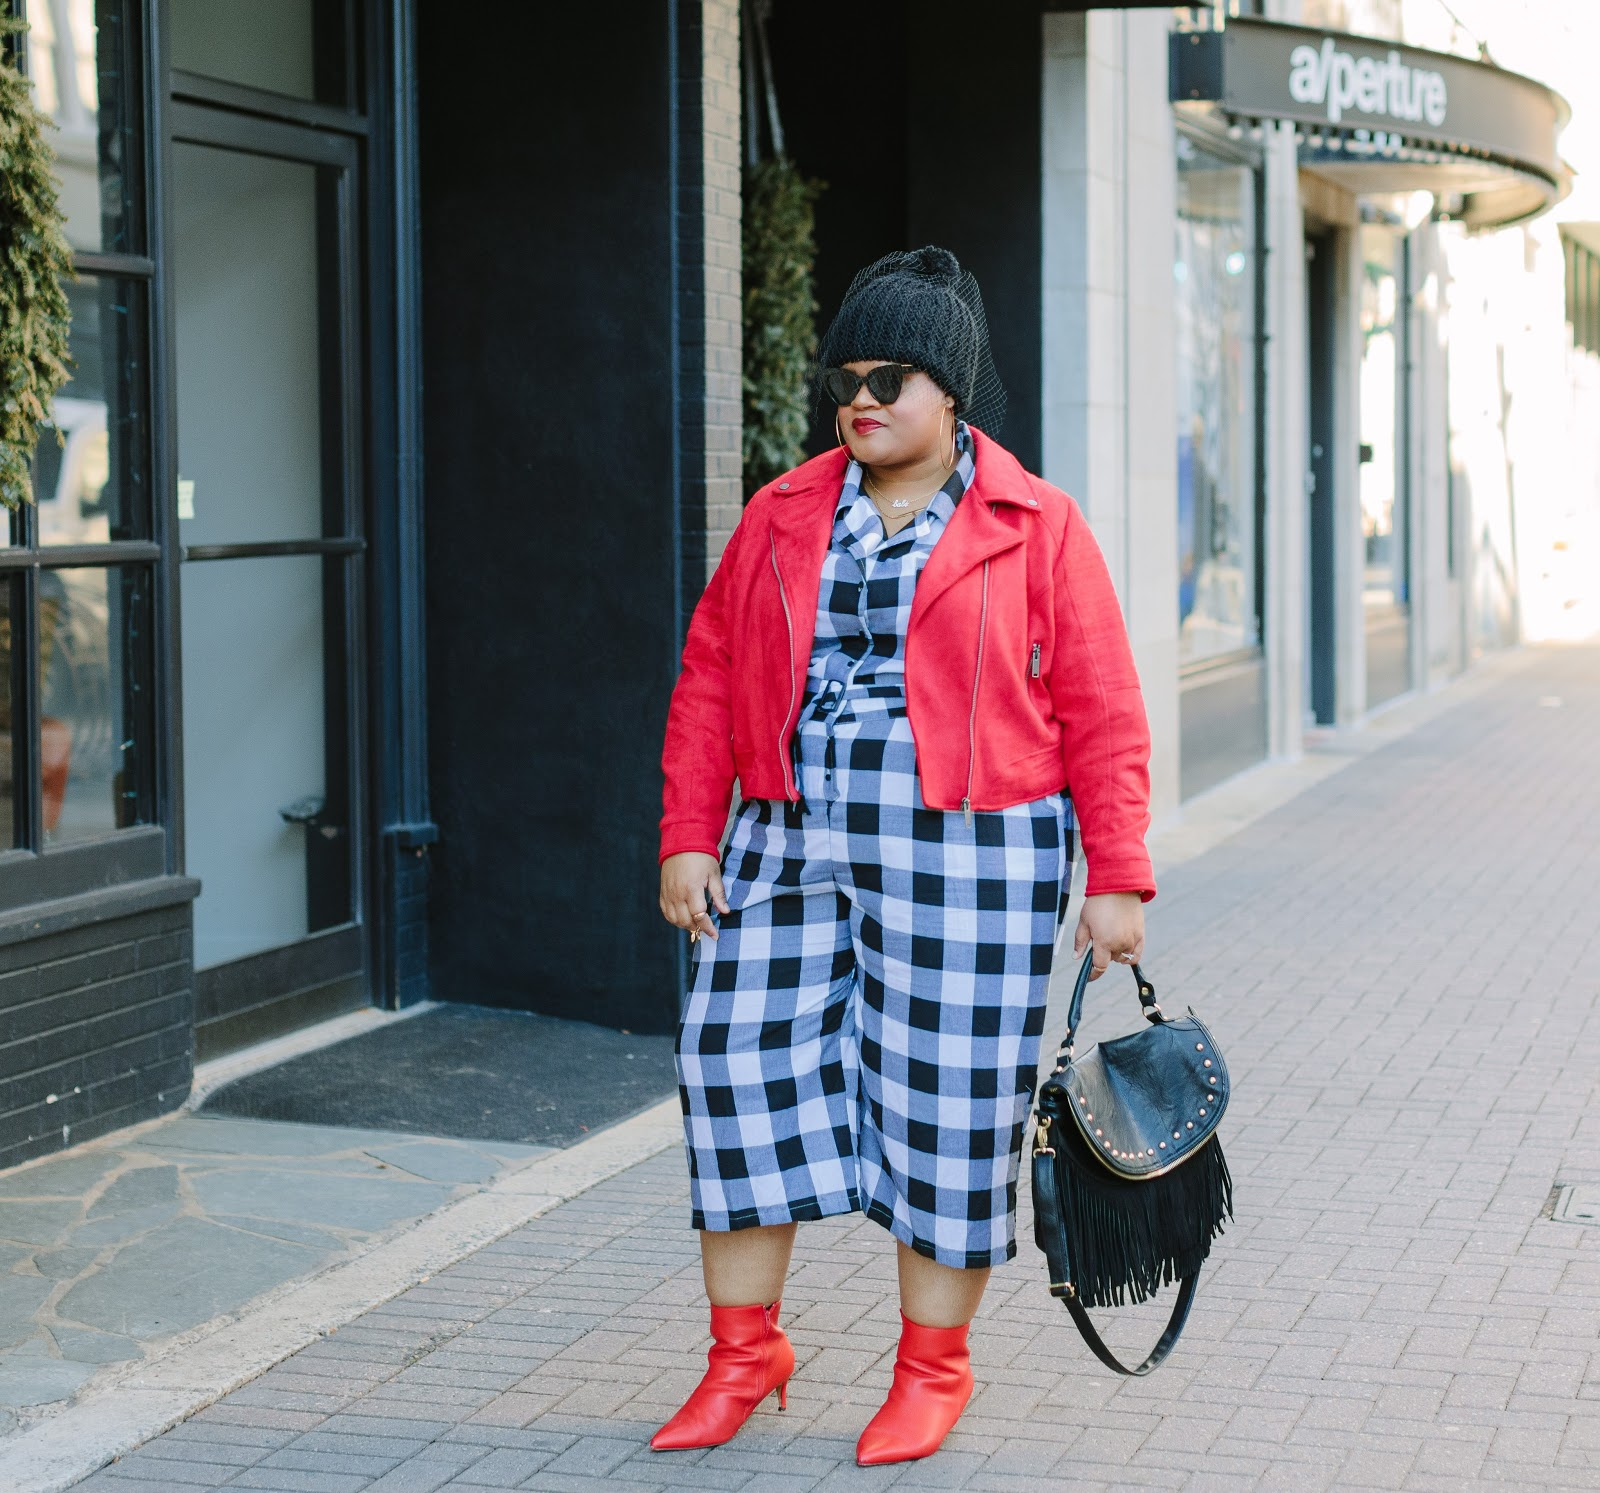 The $12 Jumpsuit + Tips for Clearance Shopping